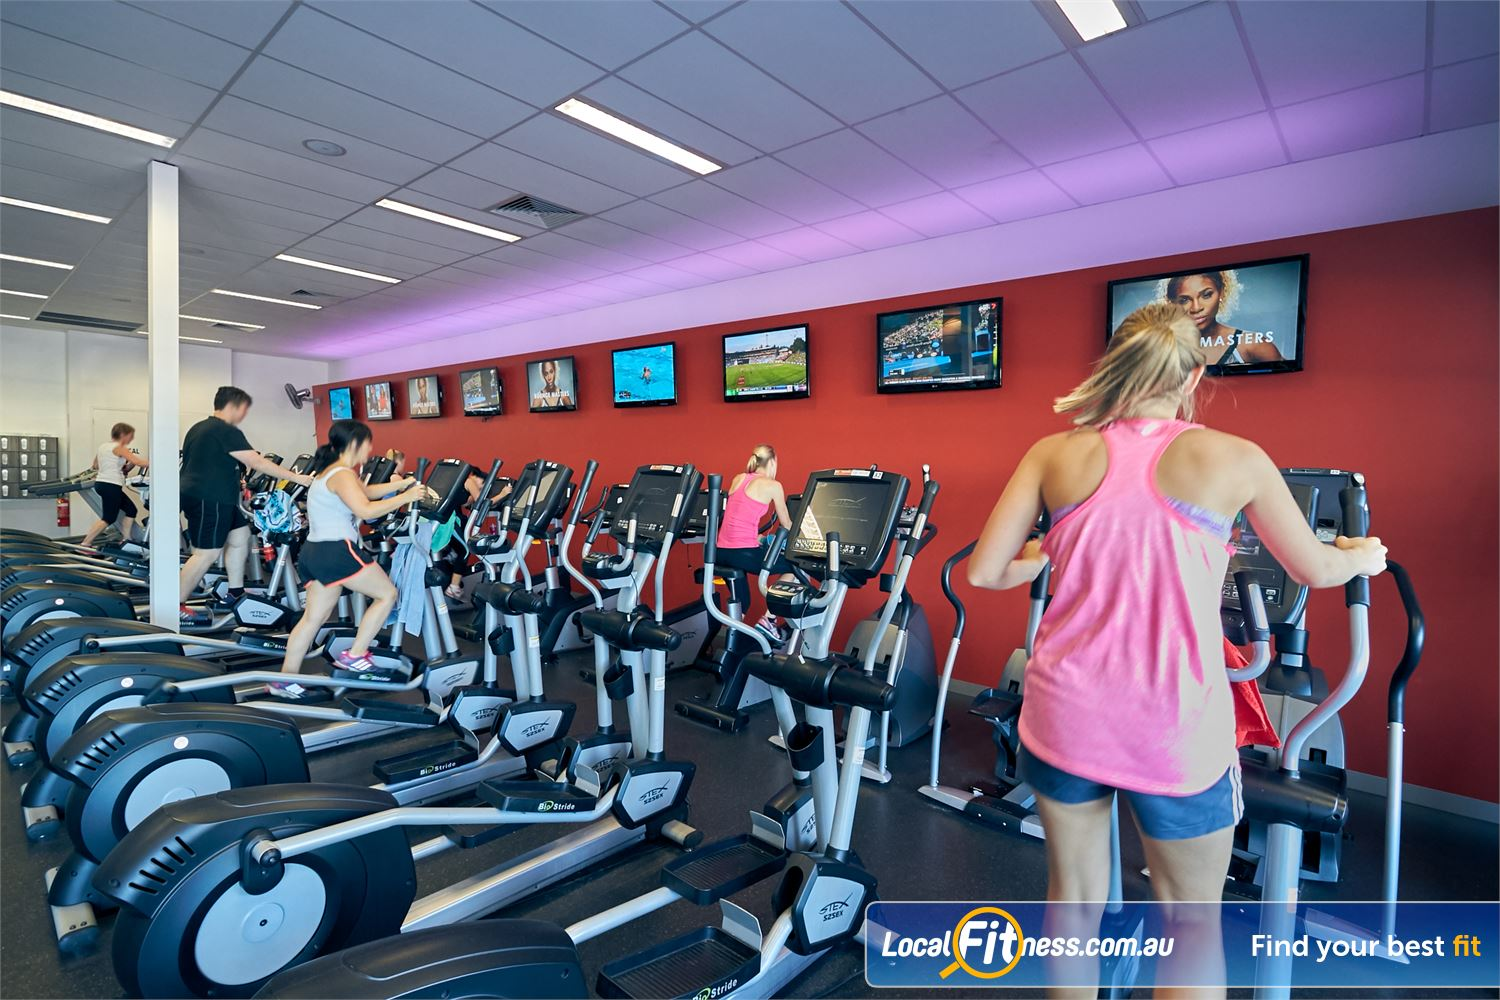 Goodlife Health Clubs Cross Roads Near Unley Park Get 24-hour access to our cardio in our 24/7 Cross Roads gym.